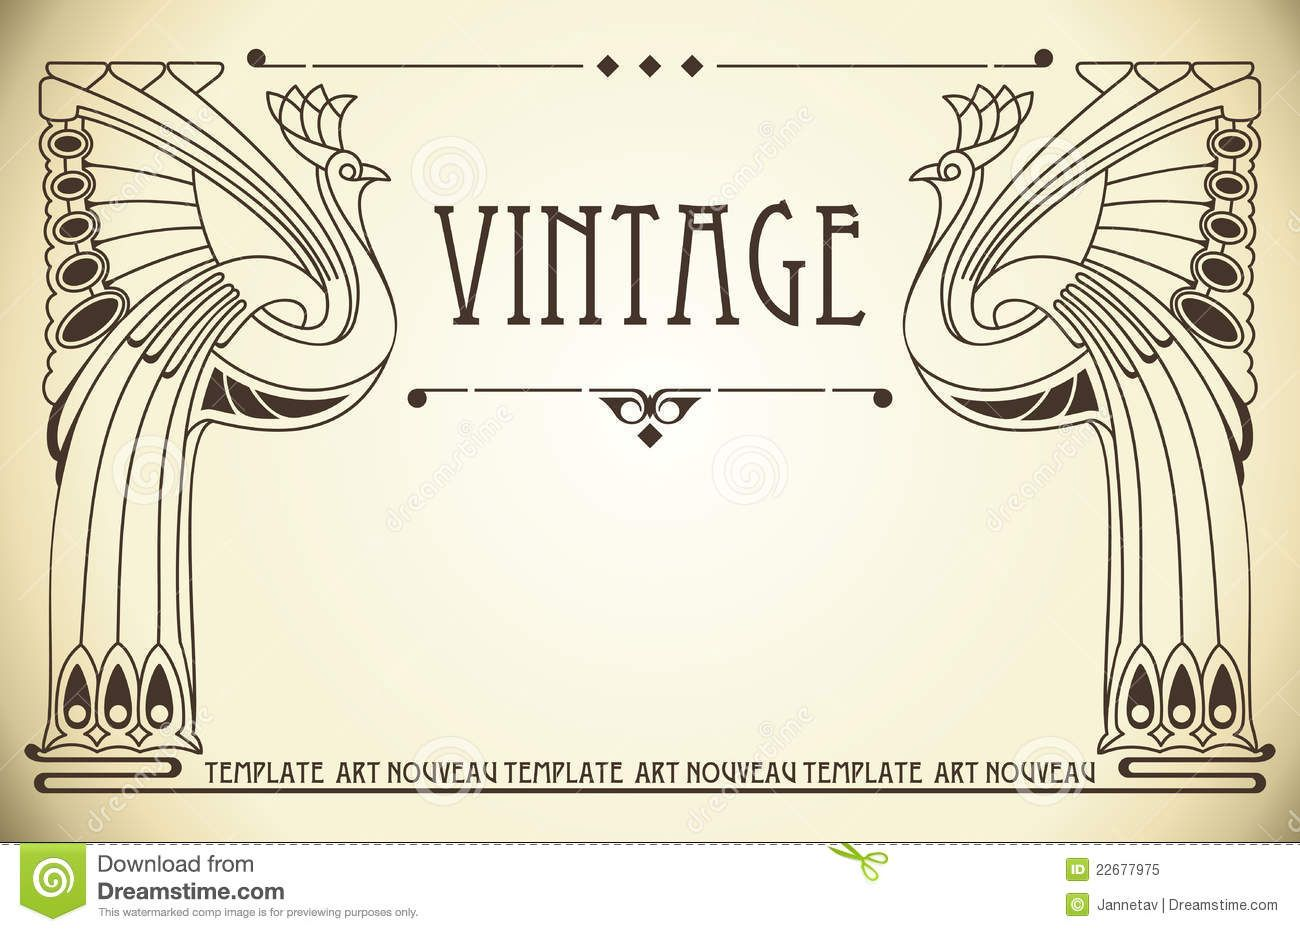 All graphics newest royalty free stock photos stock illustrations - Vintage Background In Art Nouveau Royalty Free Stock Photo Image 22677975